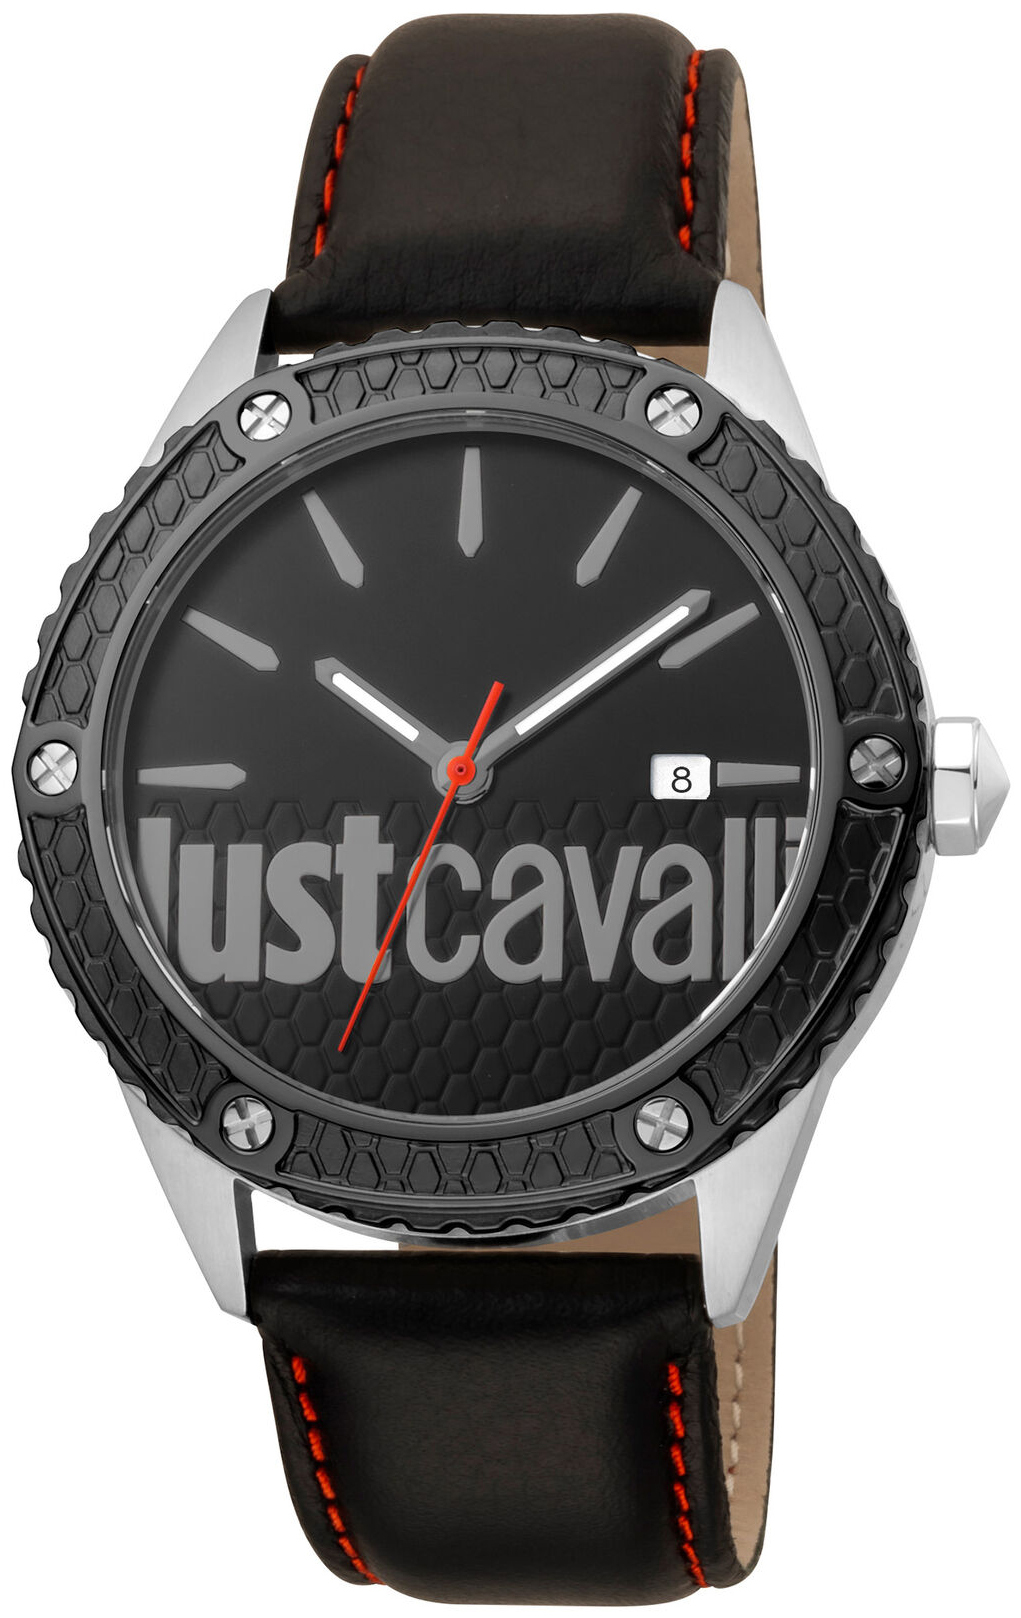 Just Cavalli 99999 Herreklokke JC1G080L0045 Sort/Lær Ø44 mm - Just Cavalli